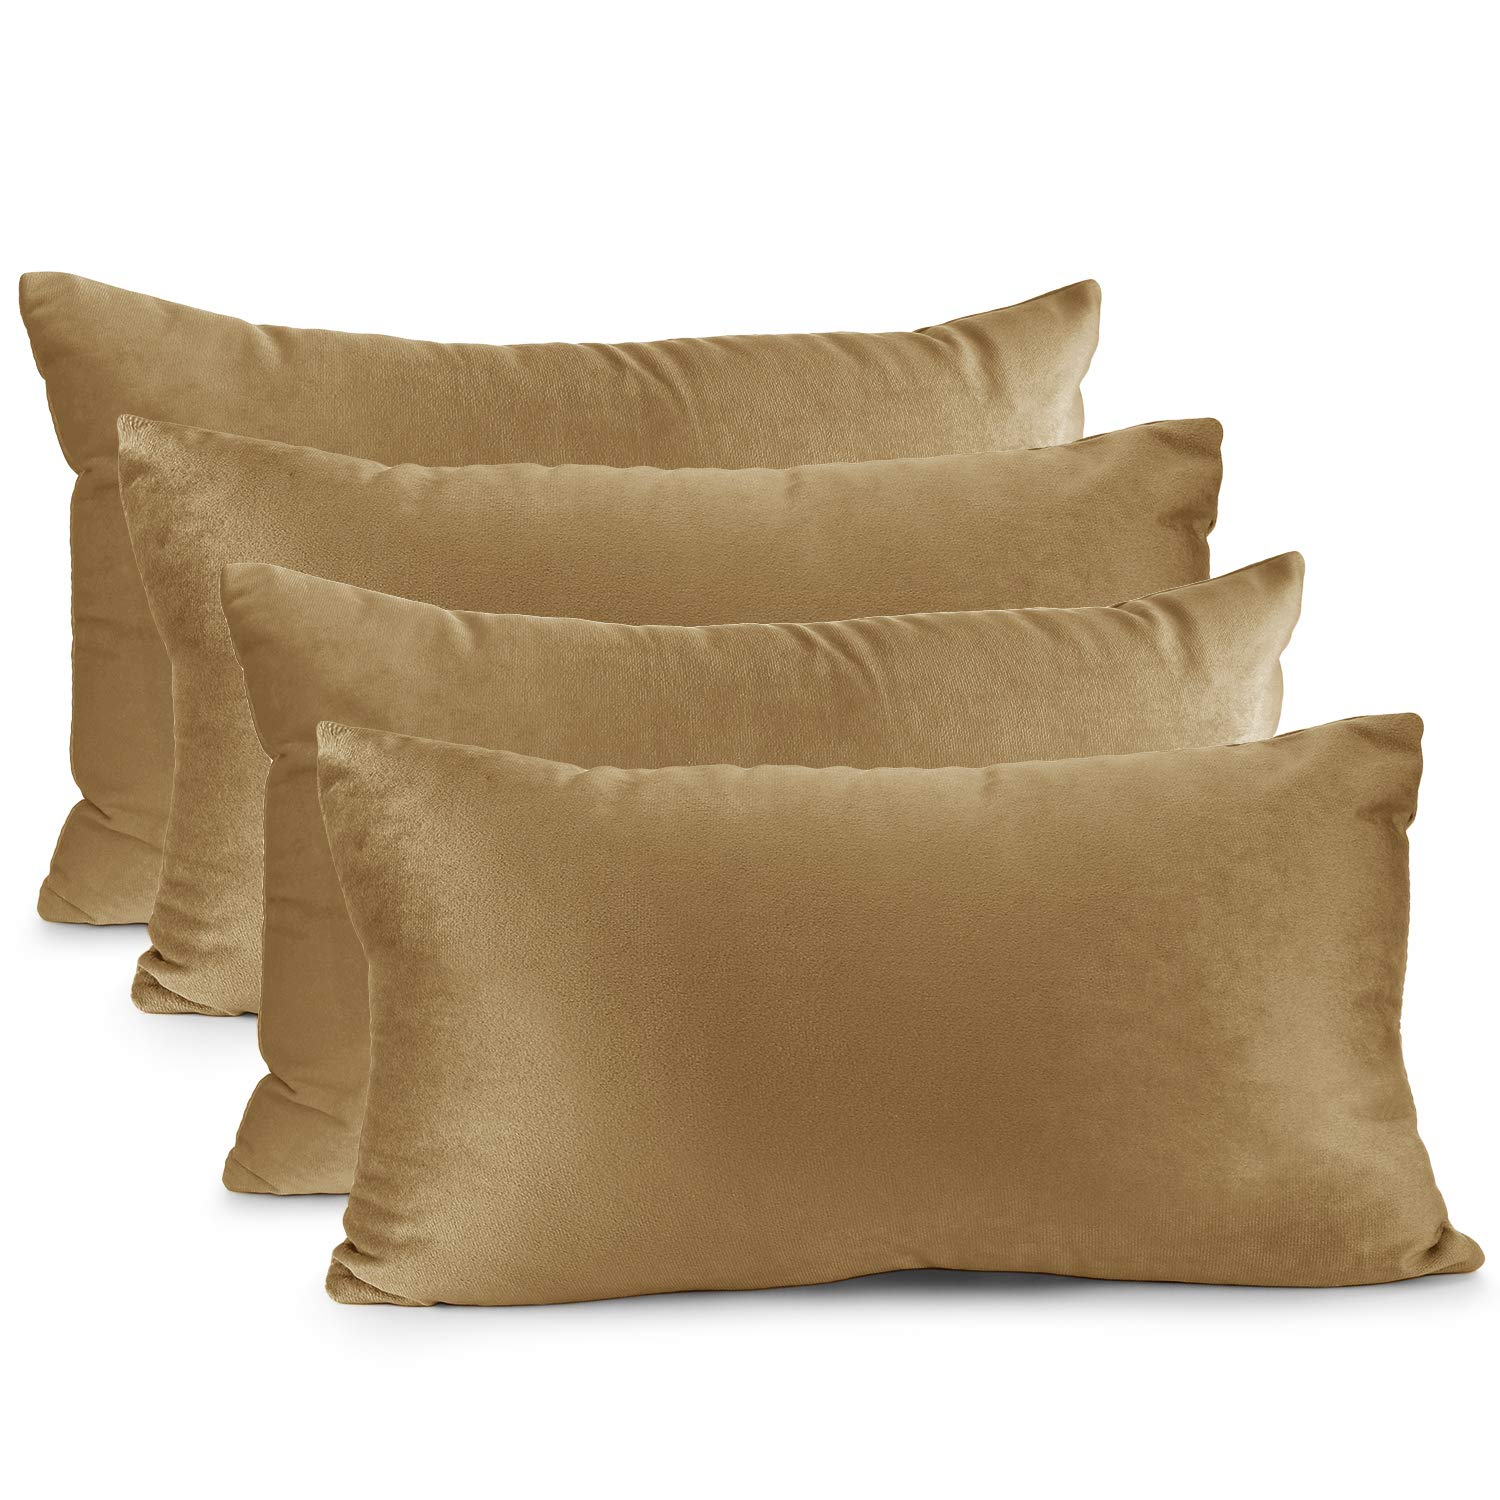 """Nestl Bedding Throw Pillow Cover 12"""" x 20"""" Soft Square Decorative Throw Pillow Covers Cozy Velvet Cushion Case for Sofa Couch Bedroom, Set of 4, Mocha Light Brown"""